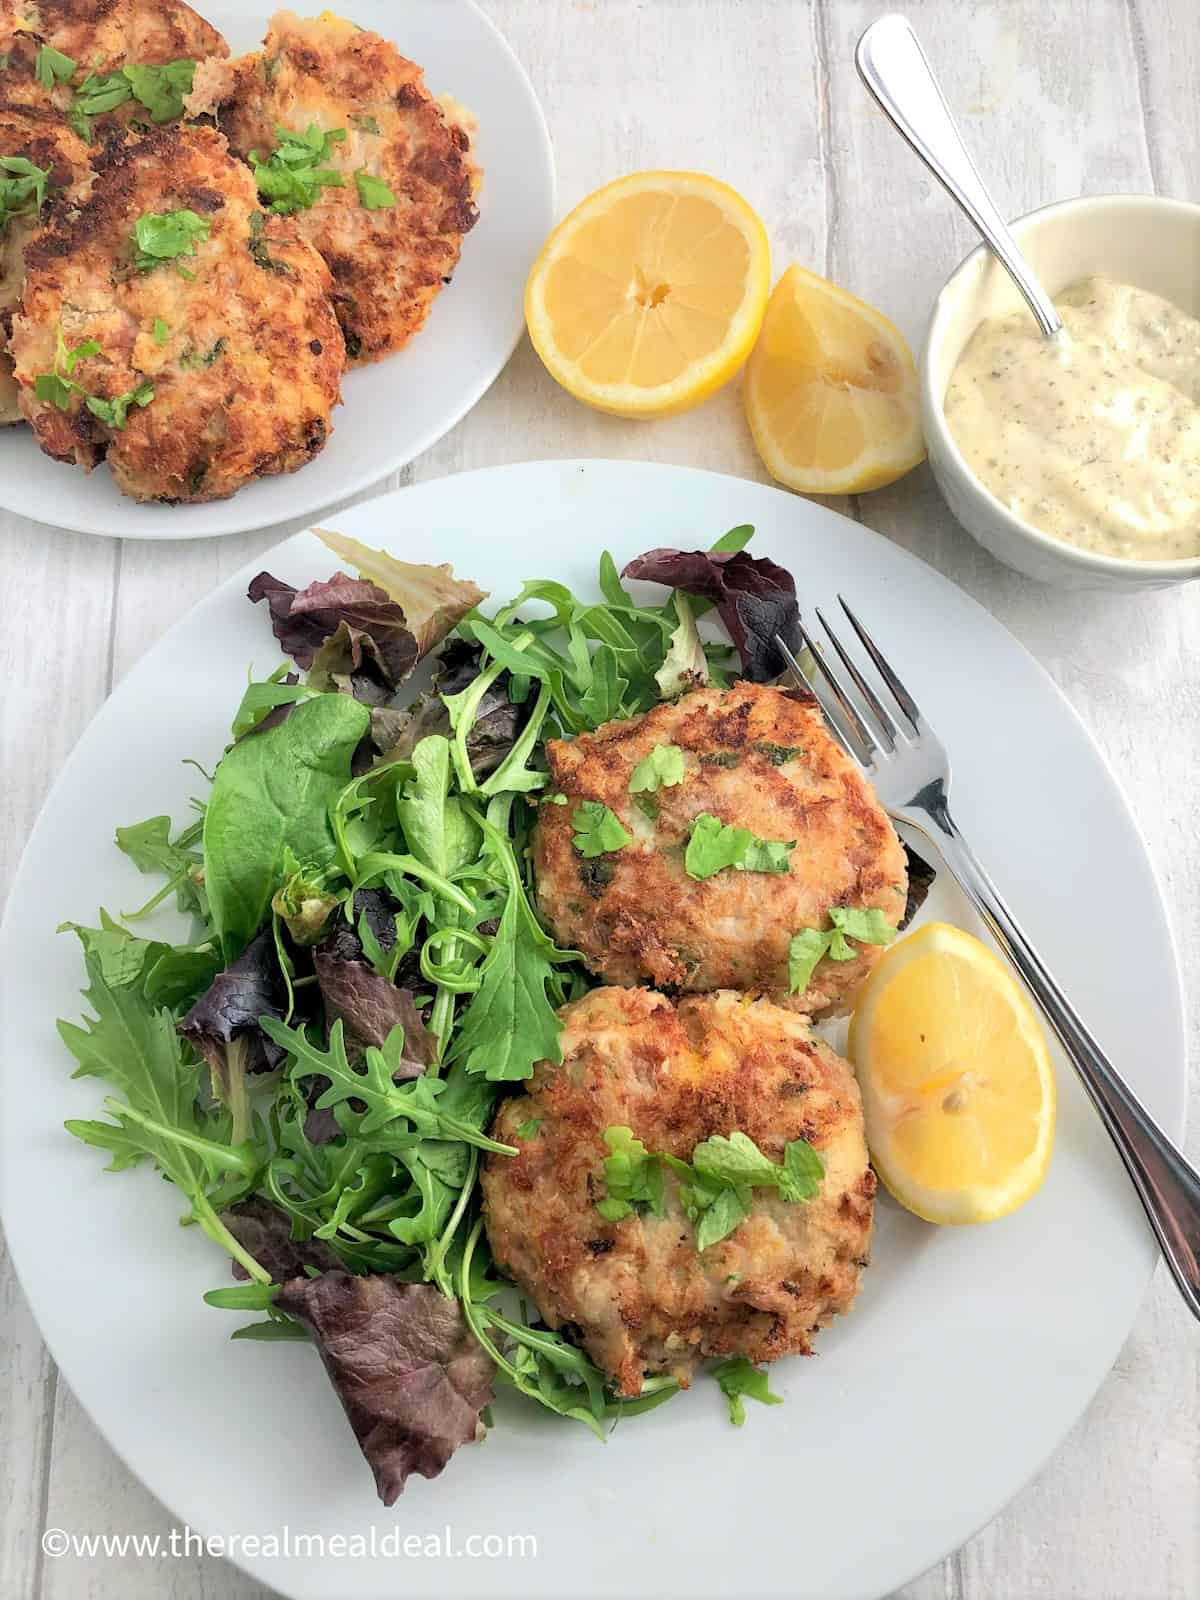 tuna fishcakes on plate with green salad and lemon half plate fishcakes lemon halves tartare sauce in background